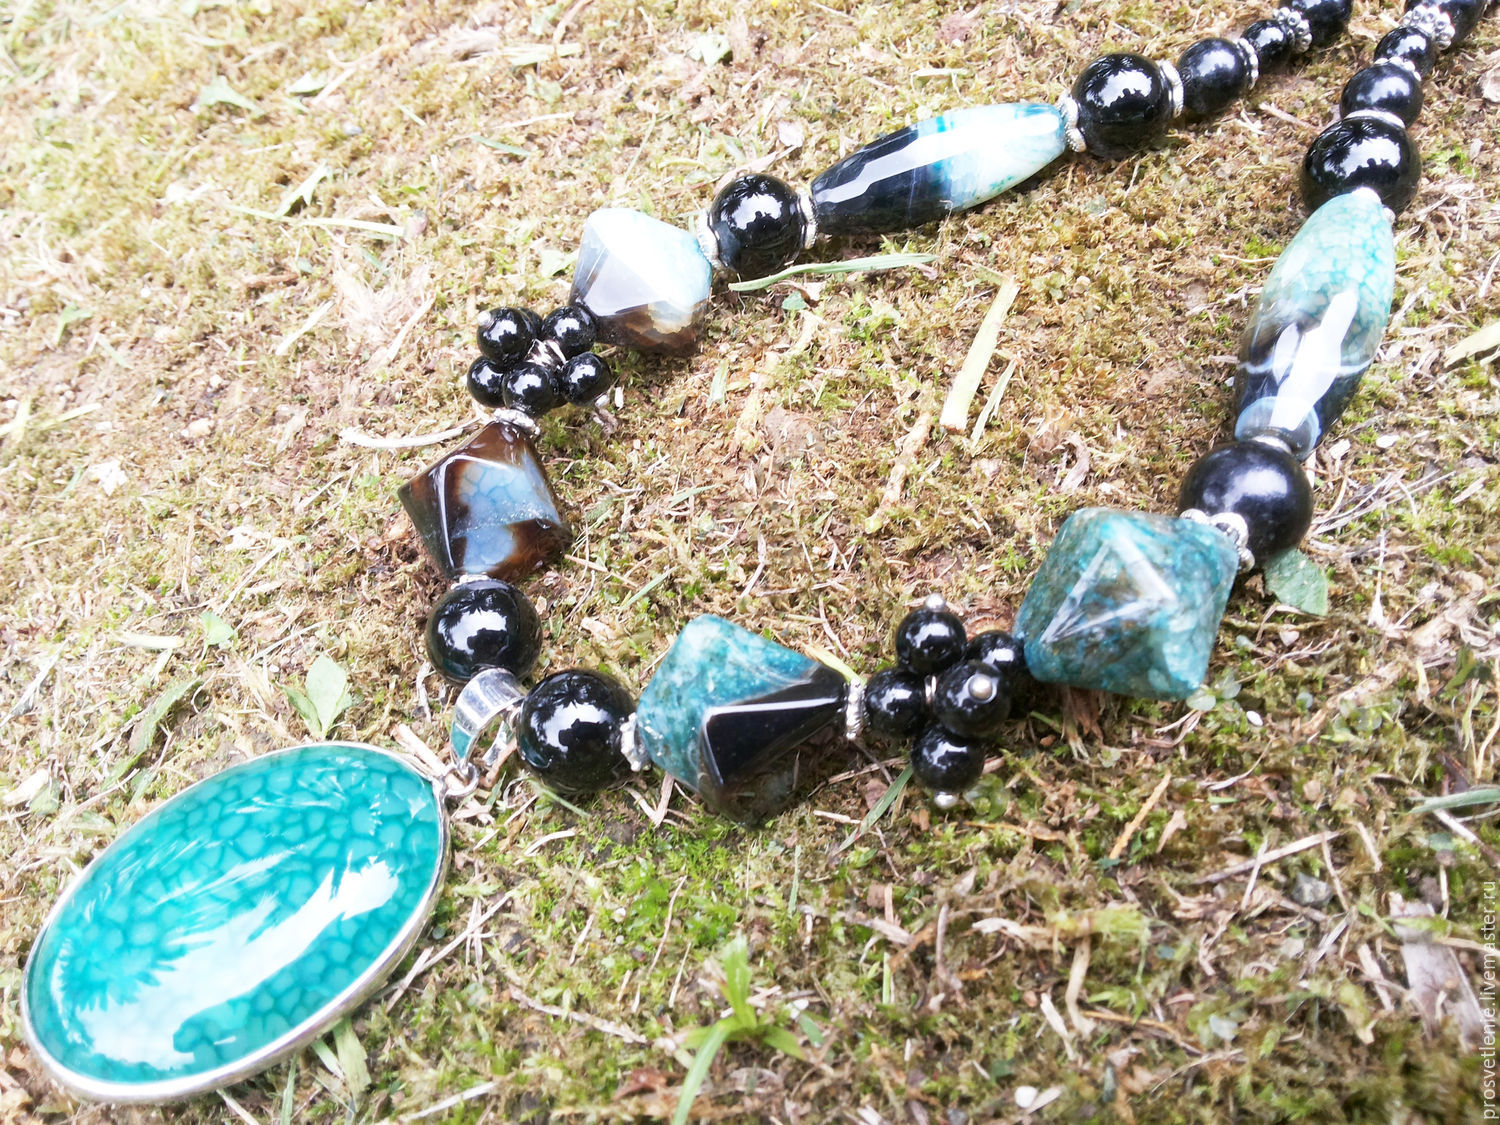 Spectacular decoration necklace made of natural stones, charming decoration necklace is made of natural stones, elegant necklace jewelry made of stones, the necklace decoration of natural stones handm